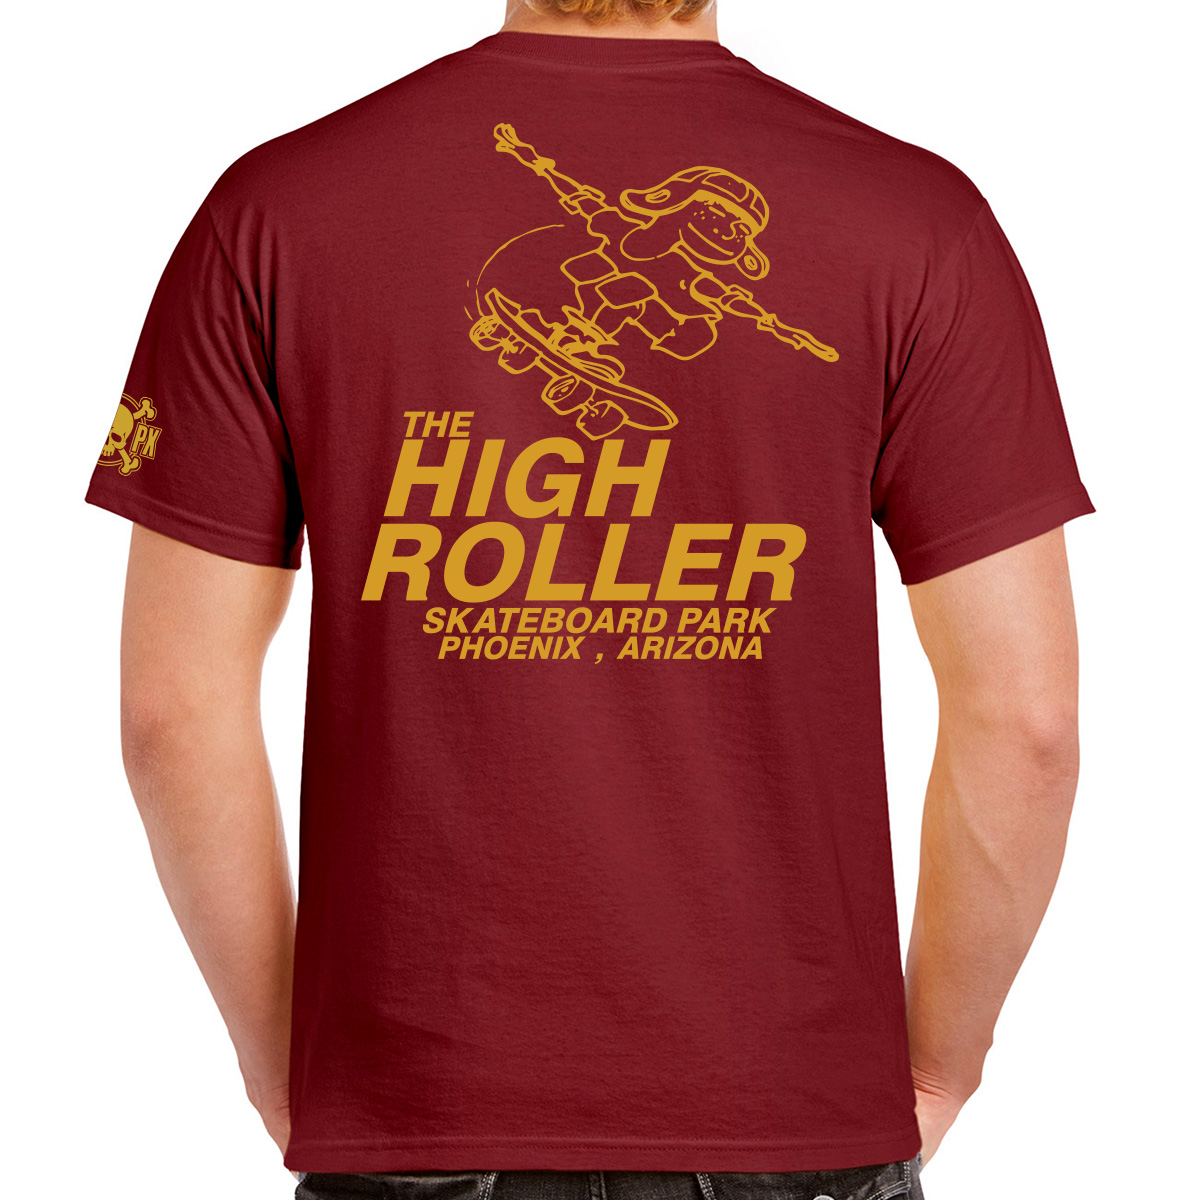 The High Roller Skateboard Park Maroon Short Sleeve T-shirt